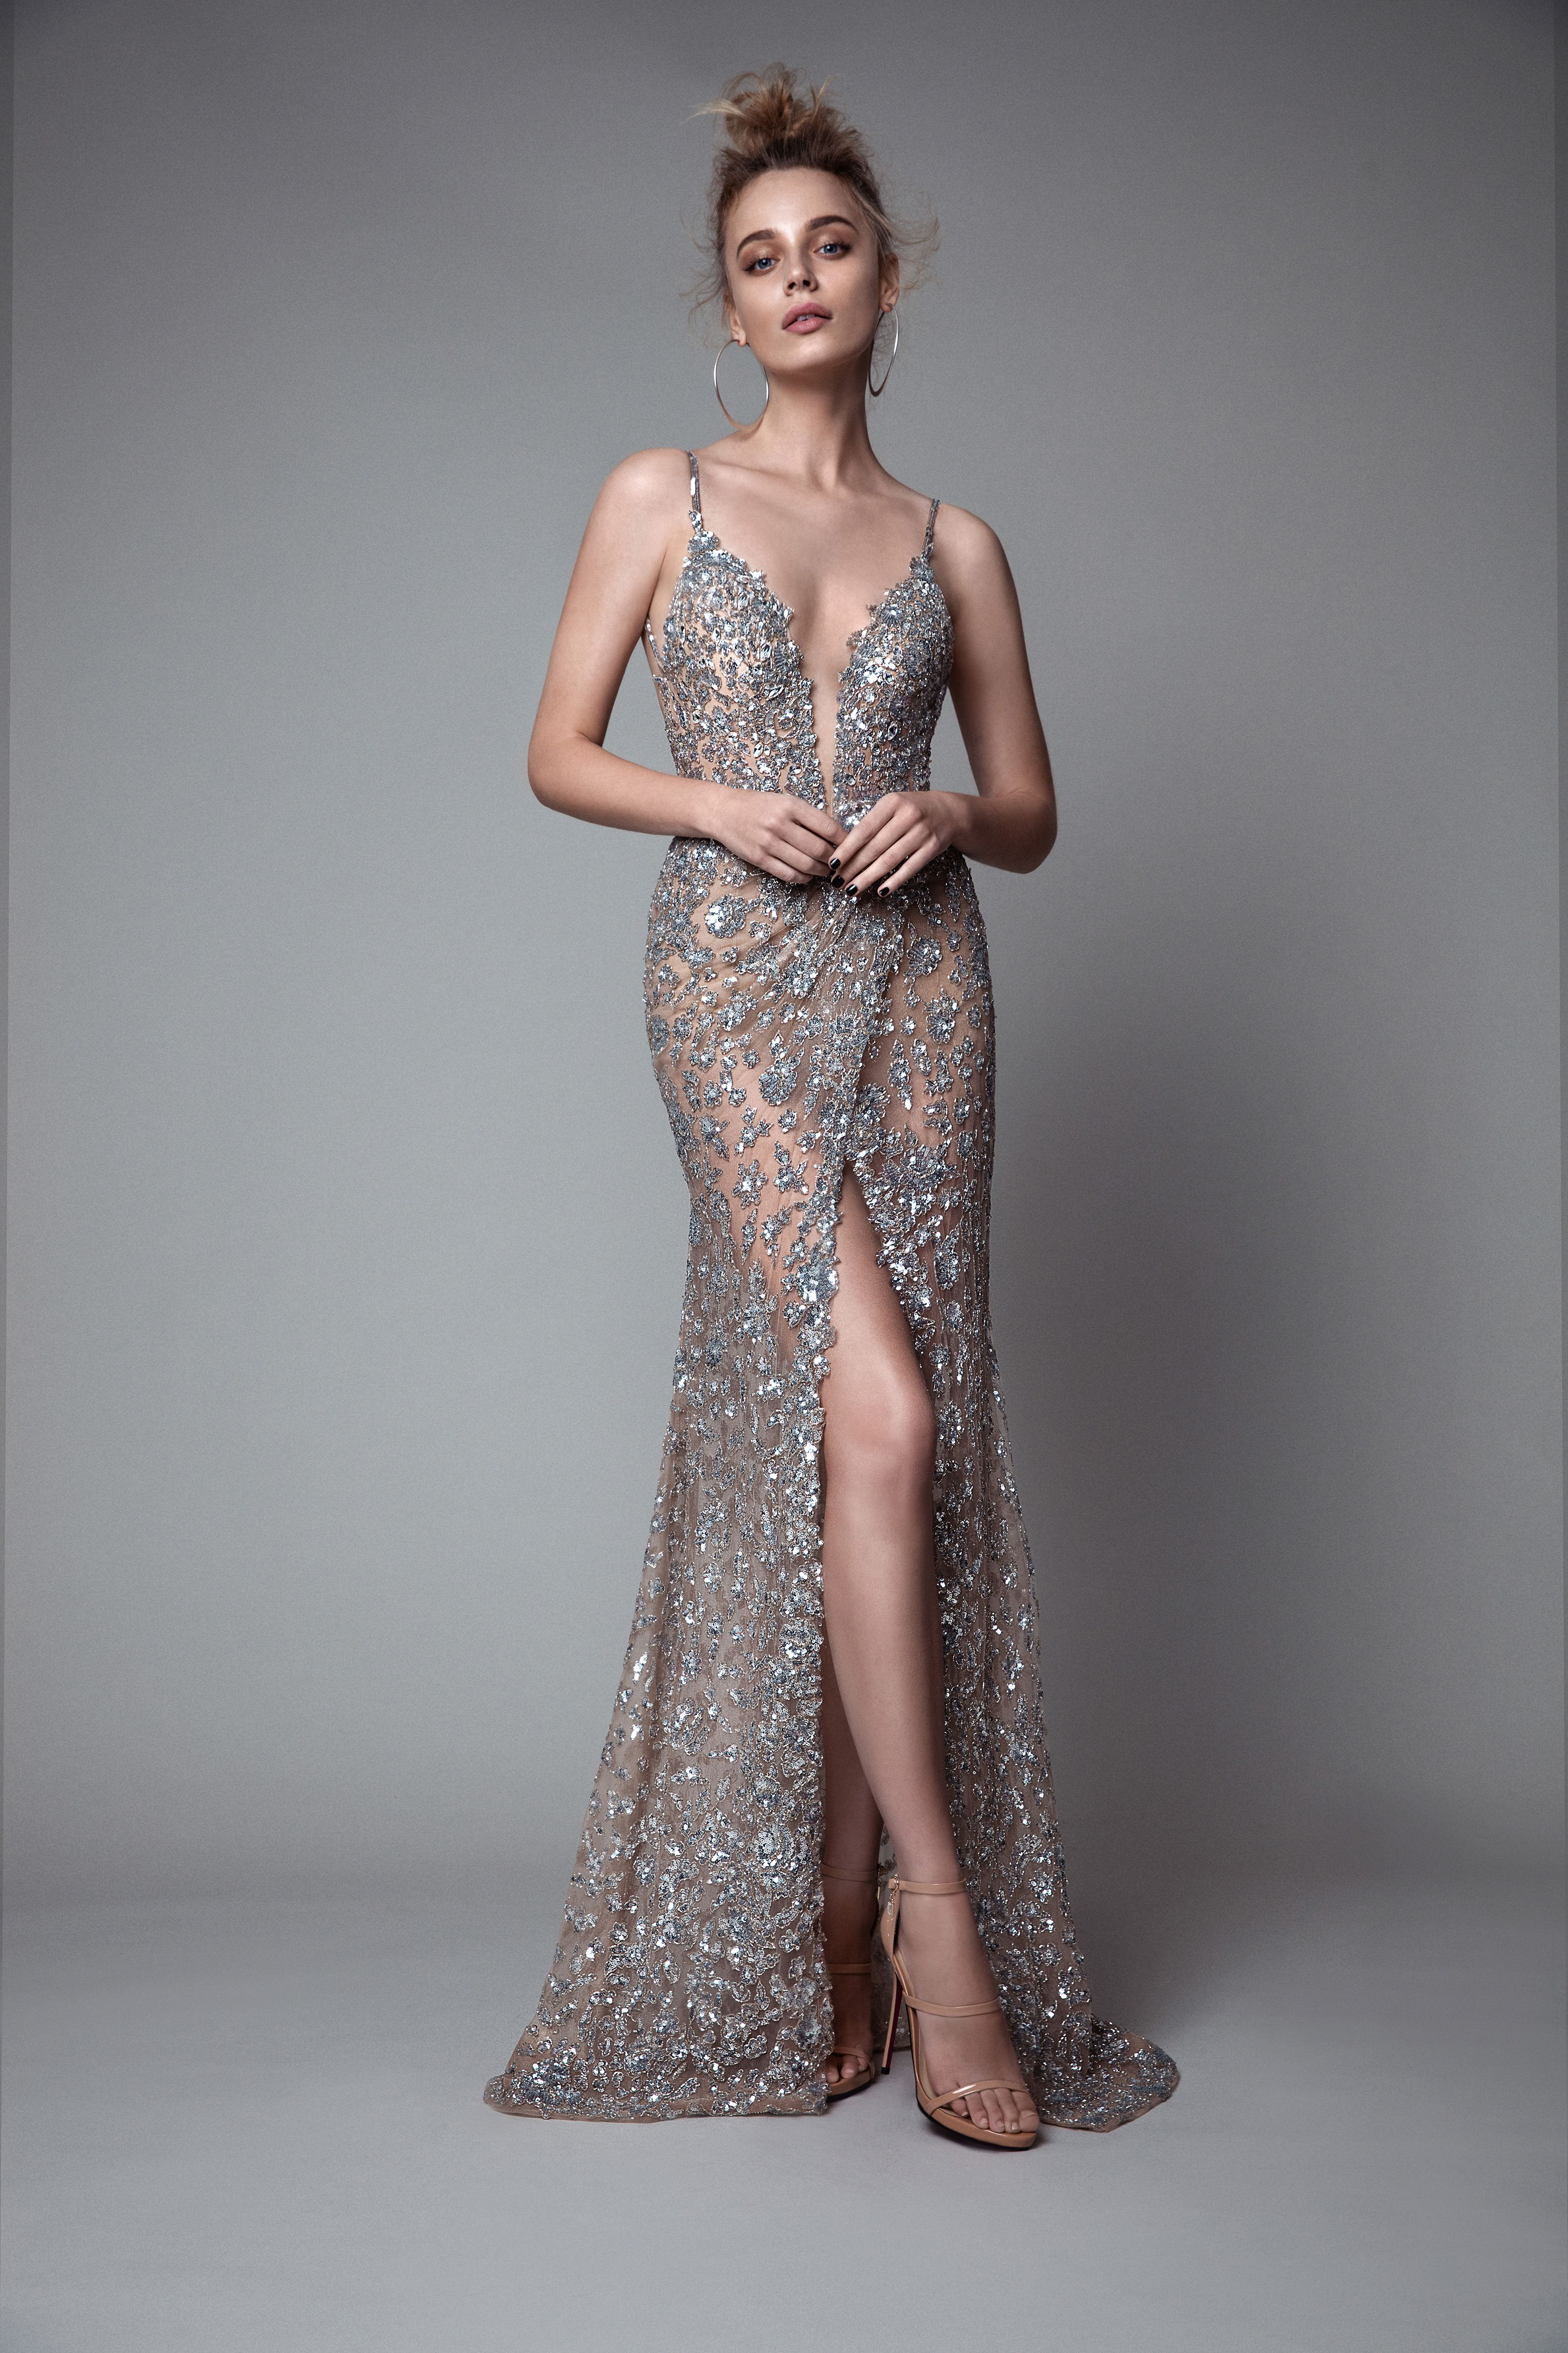 7cc351df25 Formal Dress Jewelry Evening Gown Competition Miss Universe 2017. Berta 2017  RTW Collection